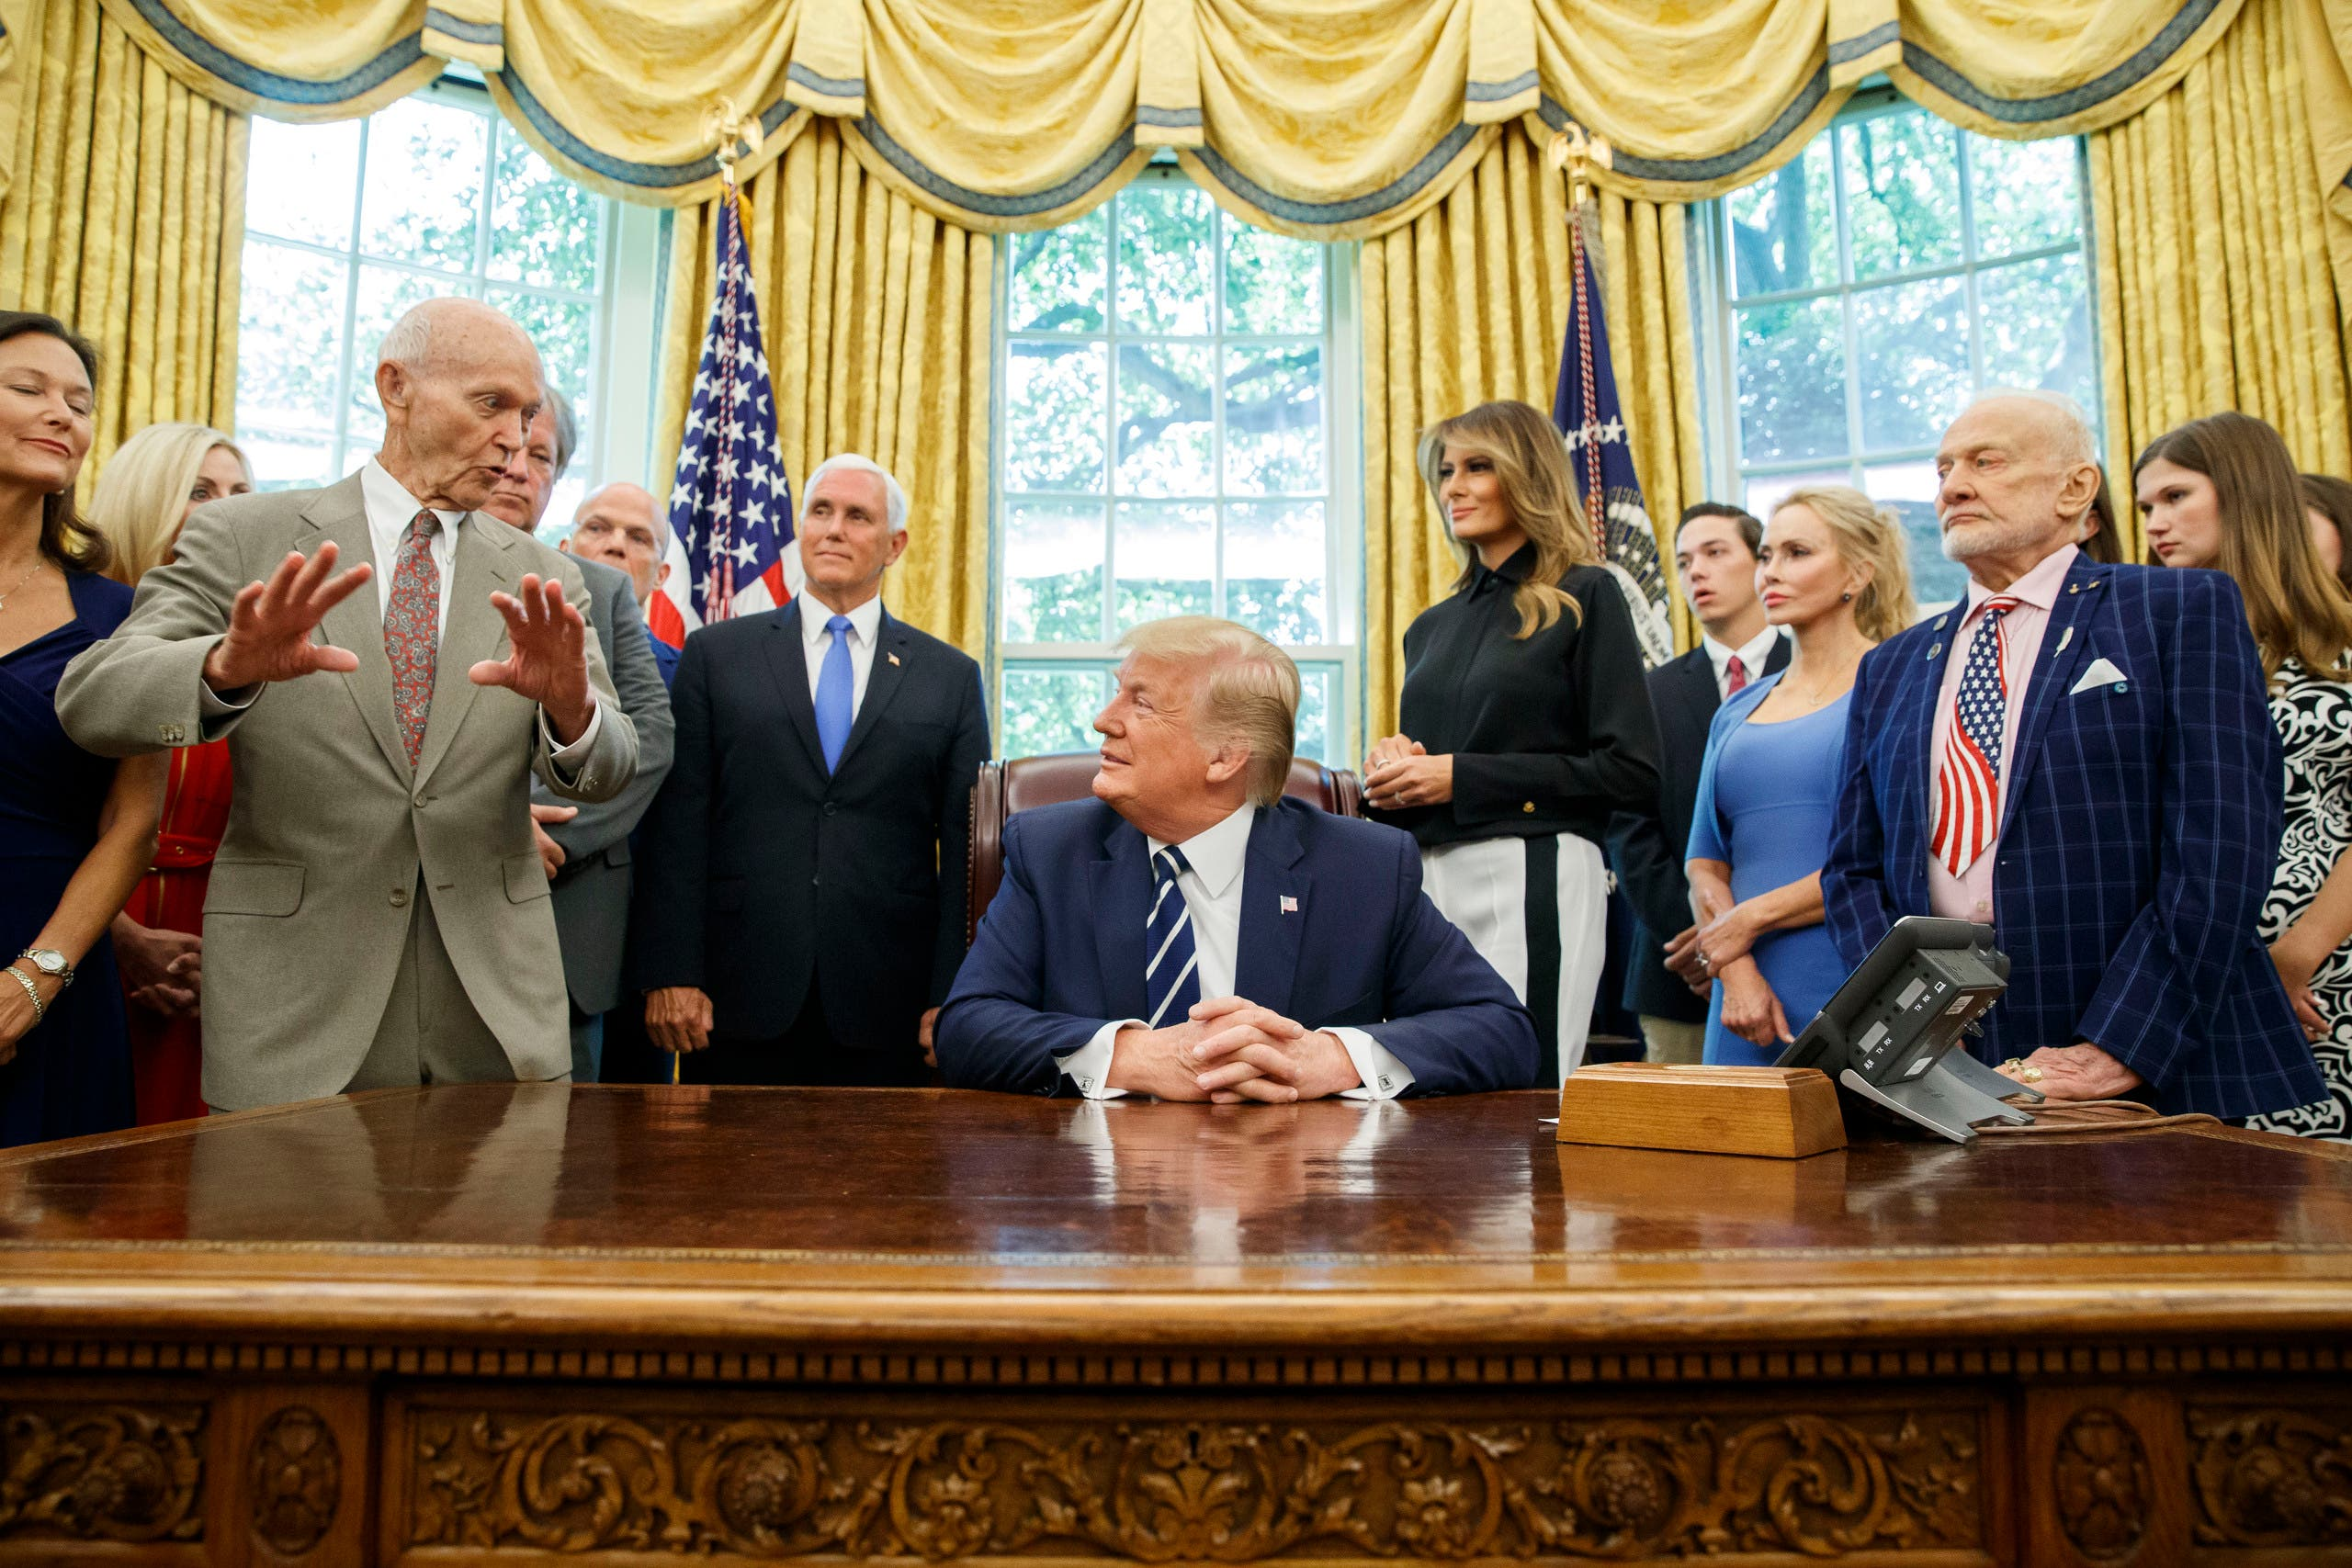 President Donald Trump, accompanied by Apollo 11 astronauts Michael Collins, left, and Buzz Aldrin, with Vice President Mike Pence and first lady Melania Trump, listens during a photo opportunity commemorating the 50th anniversary of the Apollo 11 moon landing, in the Oval Office of the White House. (AP)